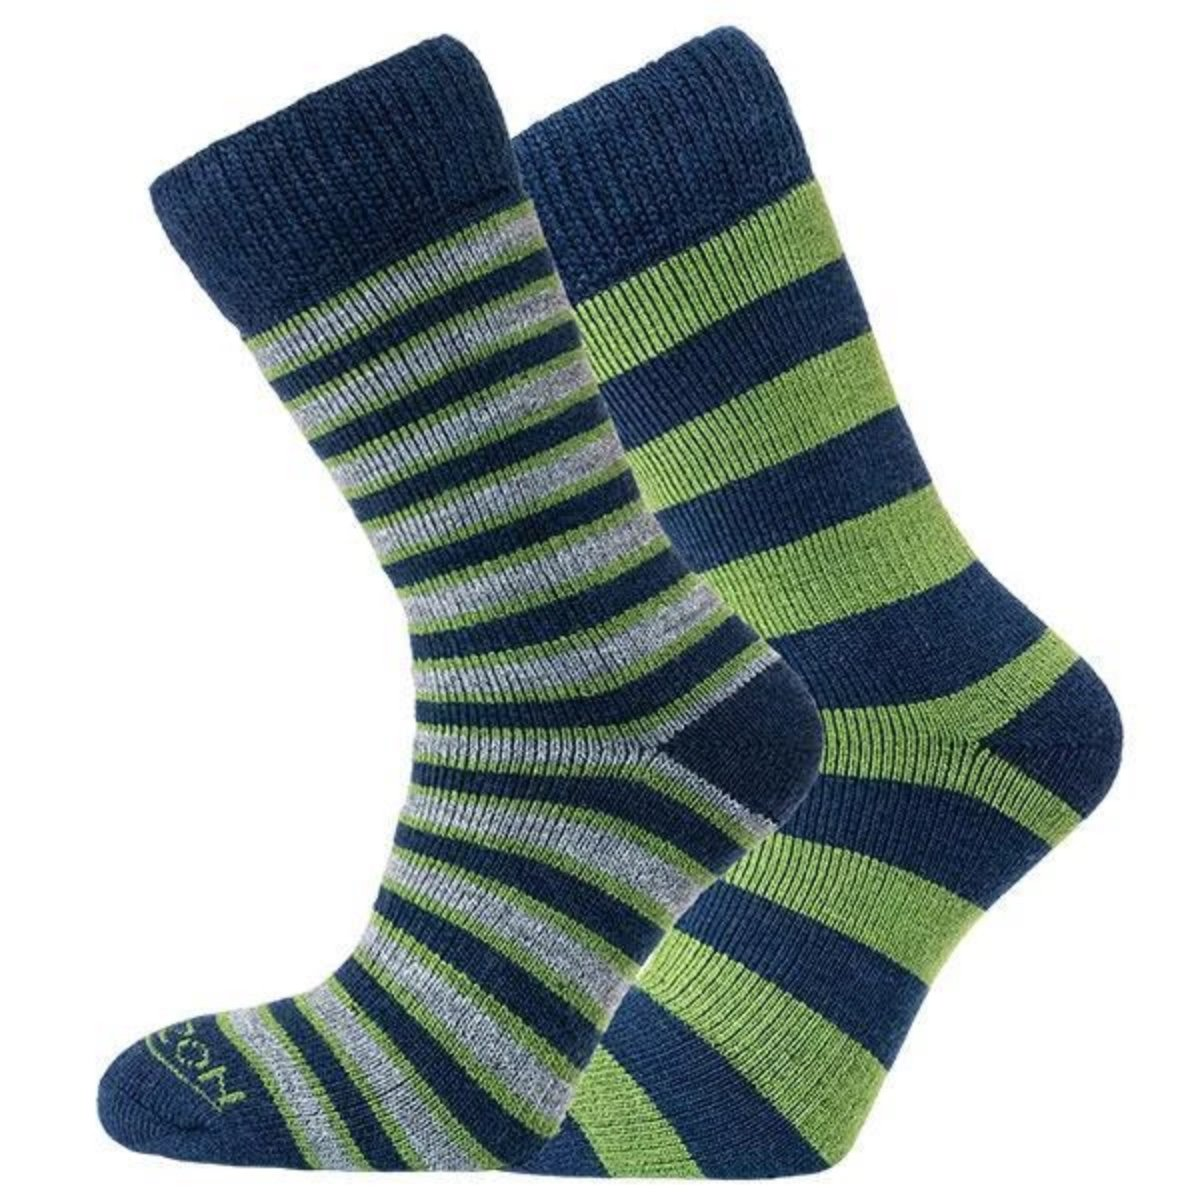 Horizon Socks » Heritage Merino Outoor Socks | Mens 2 Pack | Green/Navy